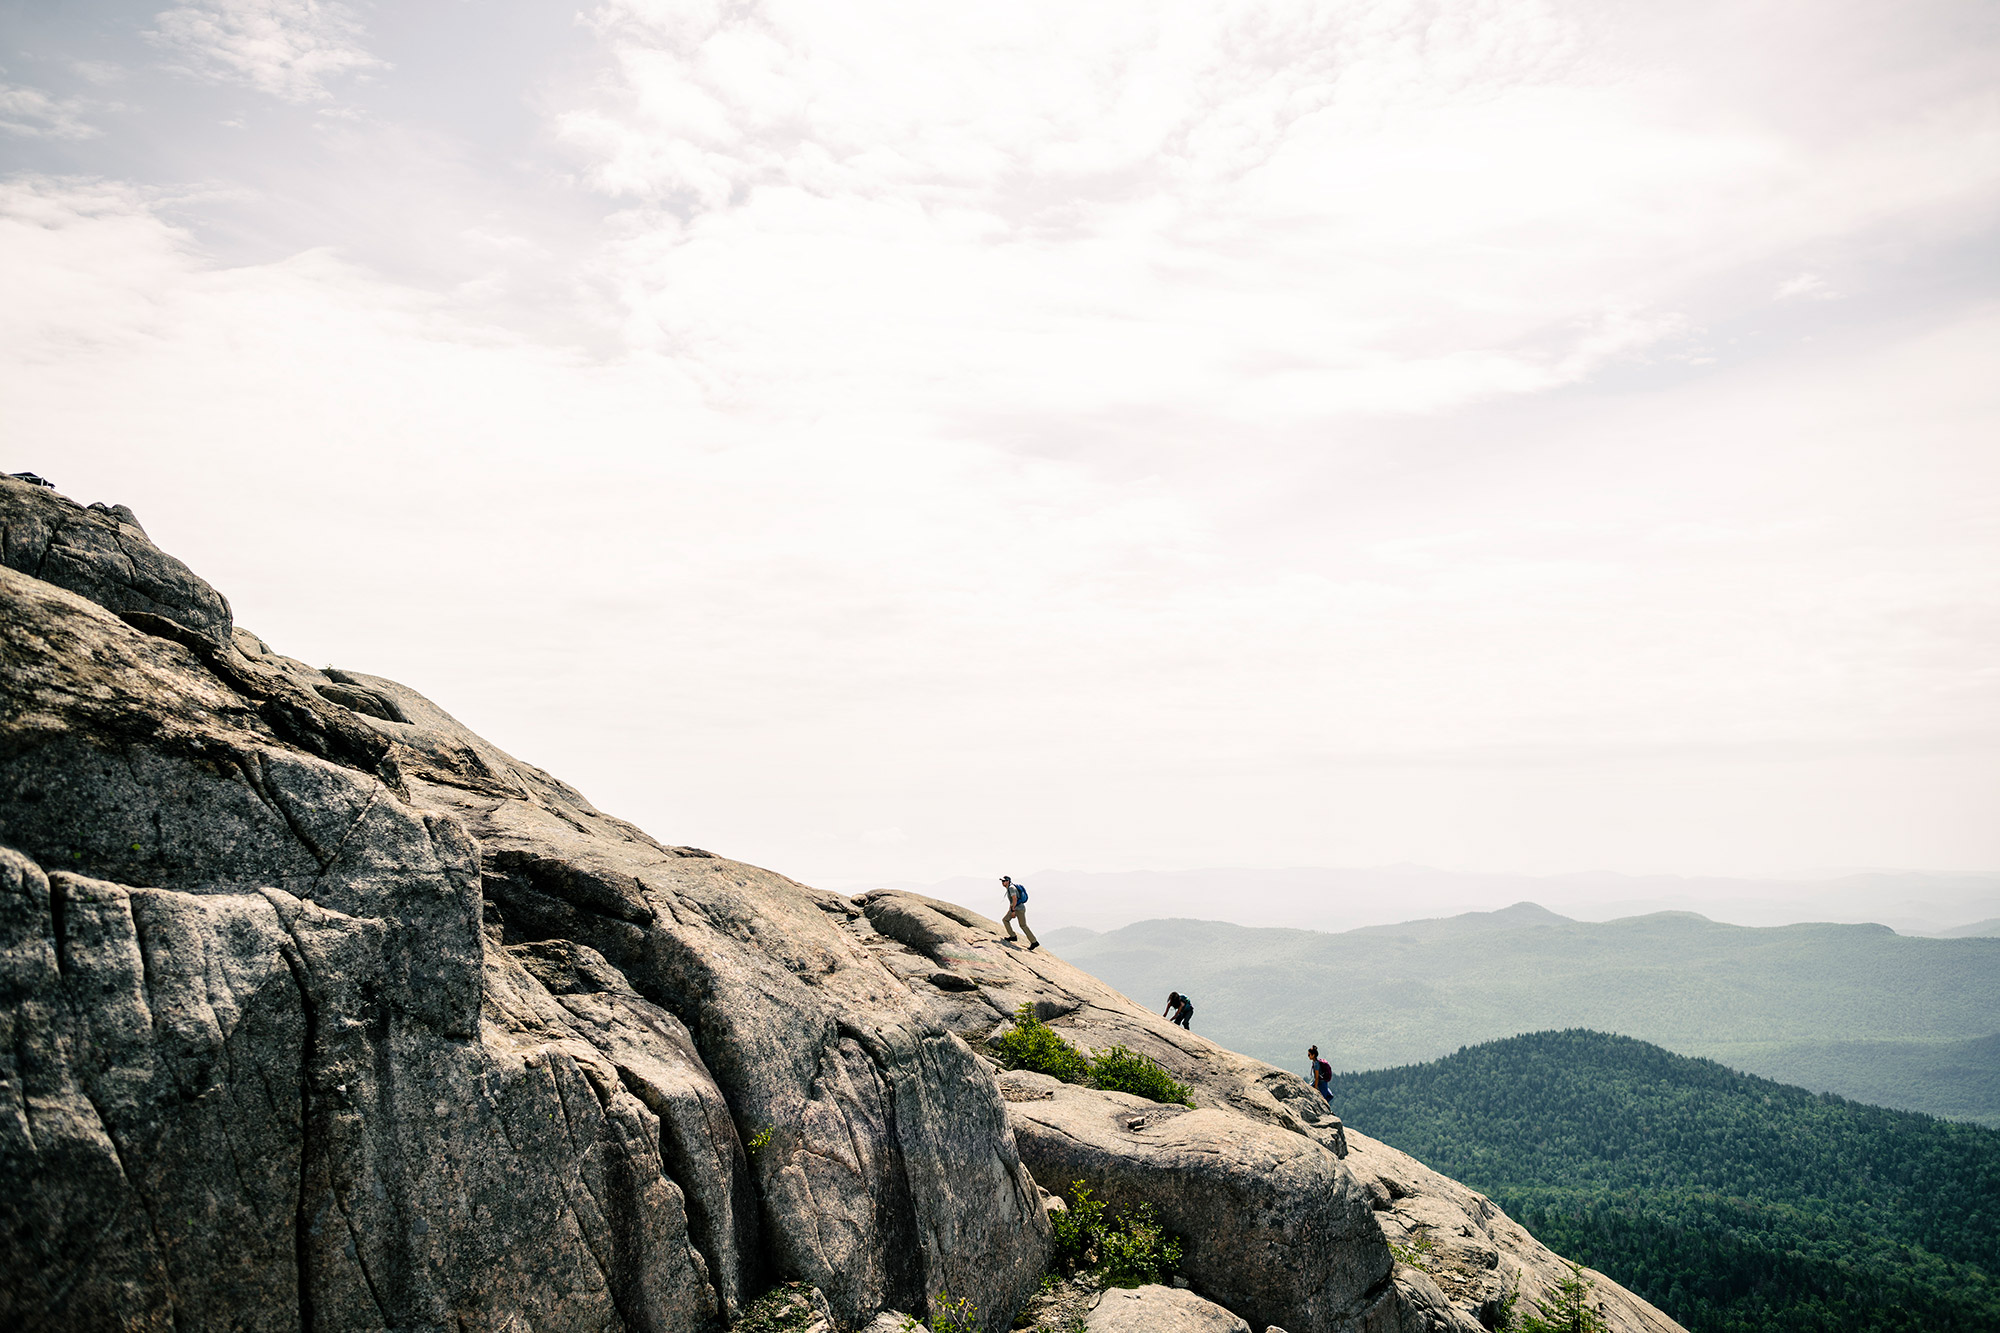 20180731_EMS_Adirondacks_Kemple-5529_Hike_Scene